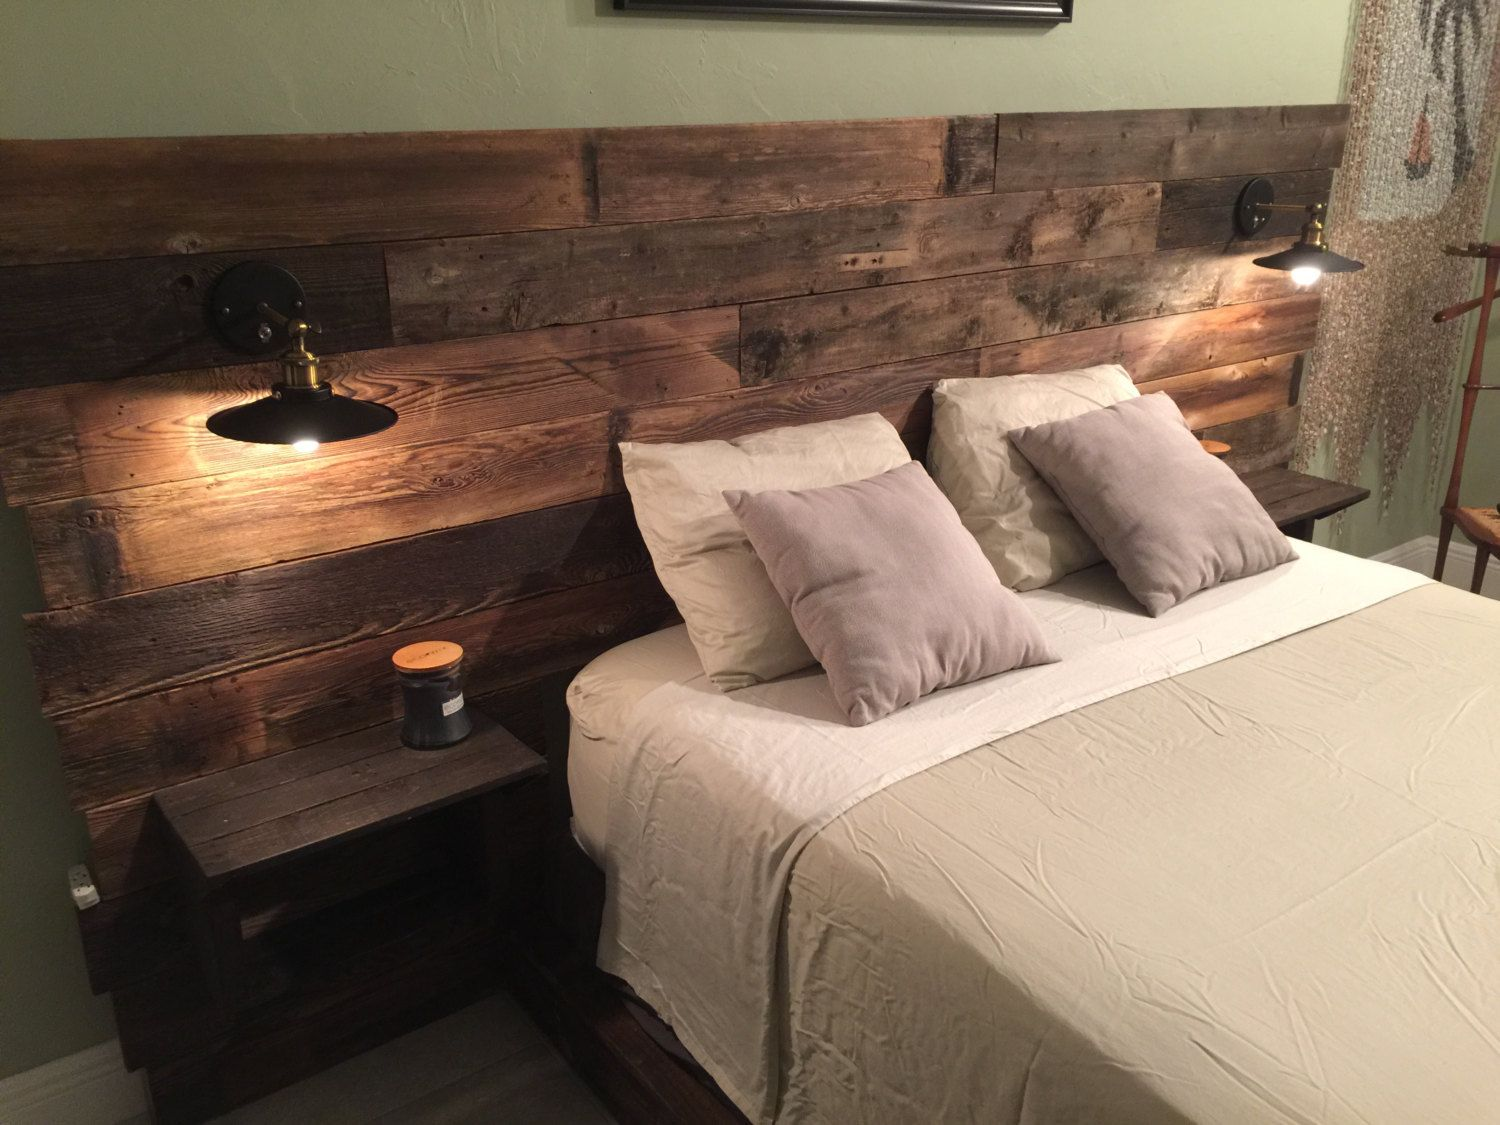 Rustic Headboard  standard   Wood Headboard  Queen Headboard  King Headboard   Full Headboard  Rustic Furniture  Headboard  Industrial. Best 25  Headboard with shelves ideas on Pinterest   Bed shelf